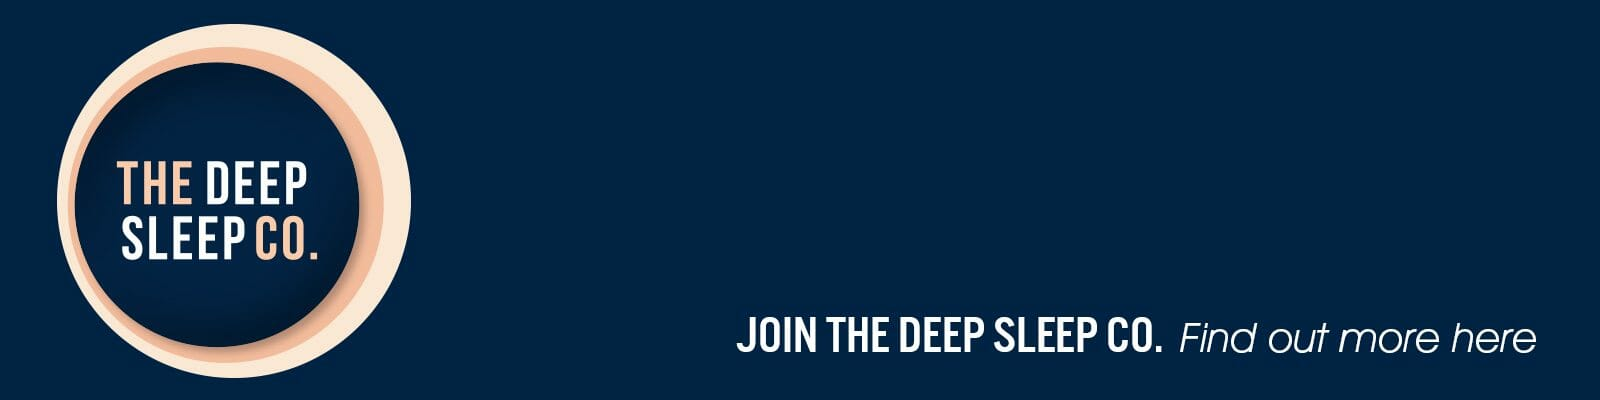 Join The Deep Sleep Co.